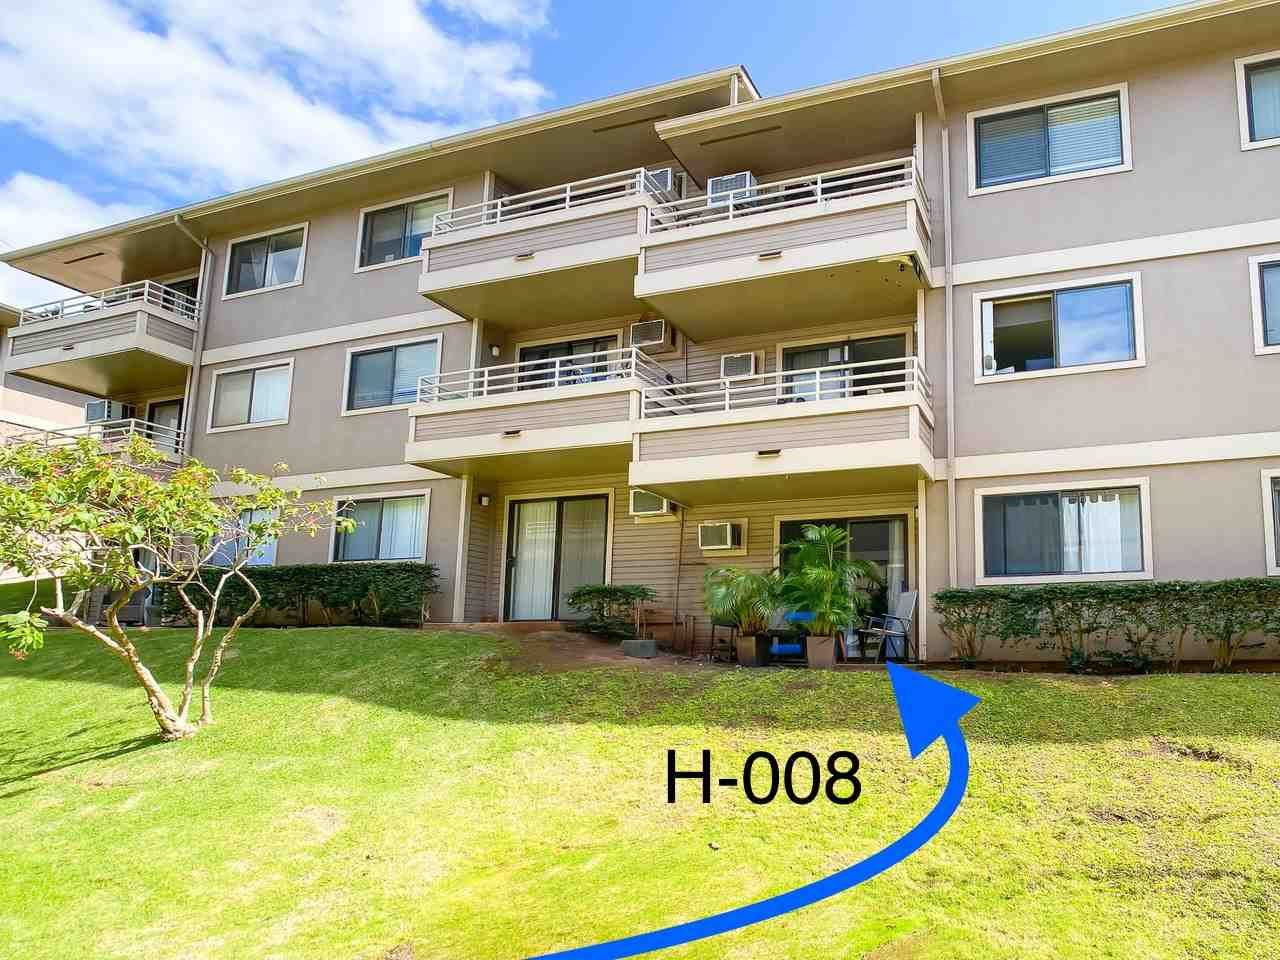 Photo of 2747 S Kihei Rd #H-008, Kihei, HI 96753 (MLS # 391061)